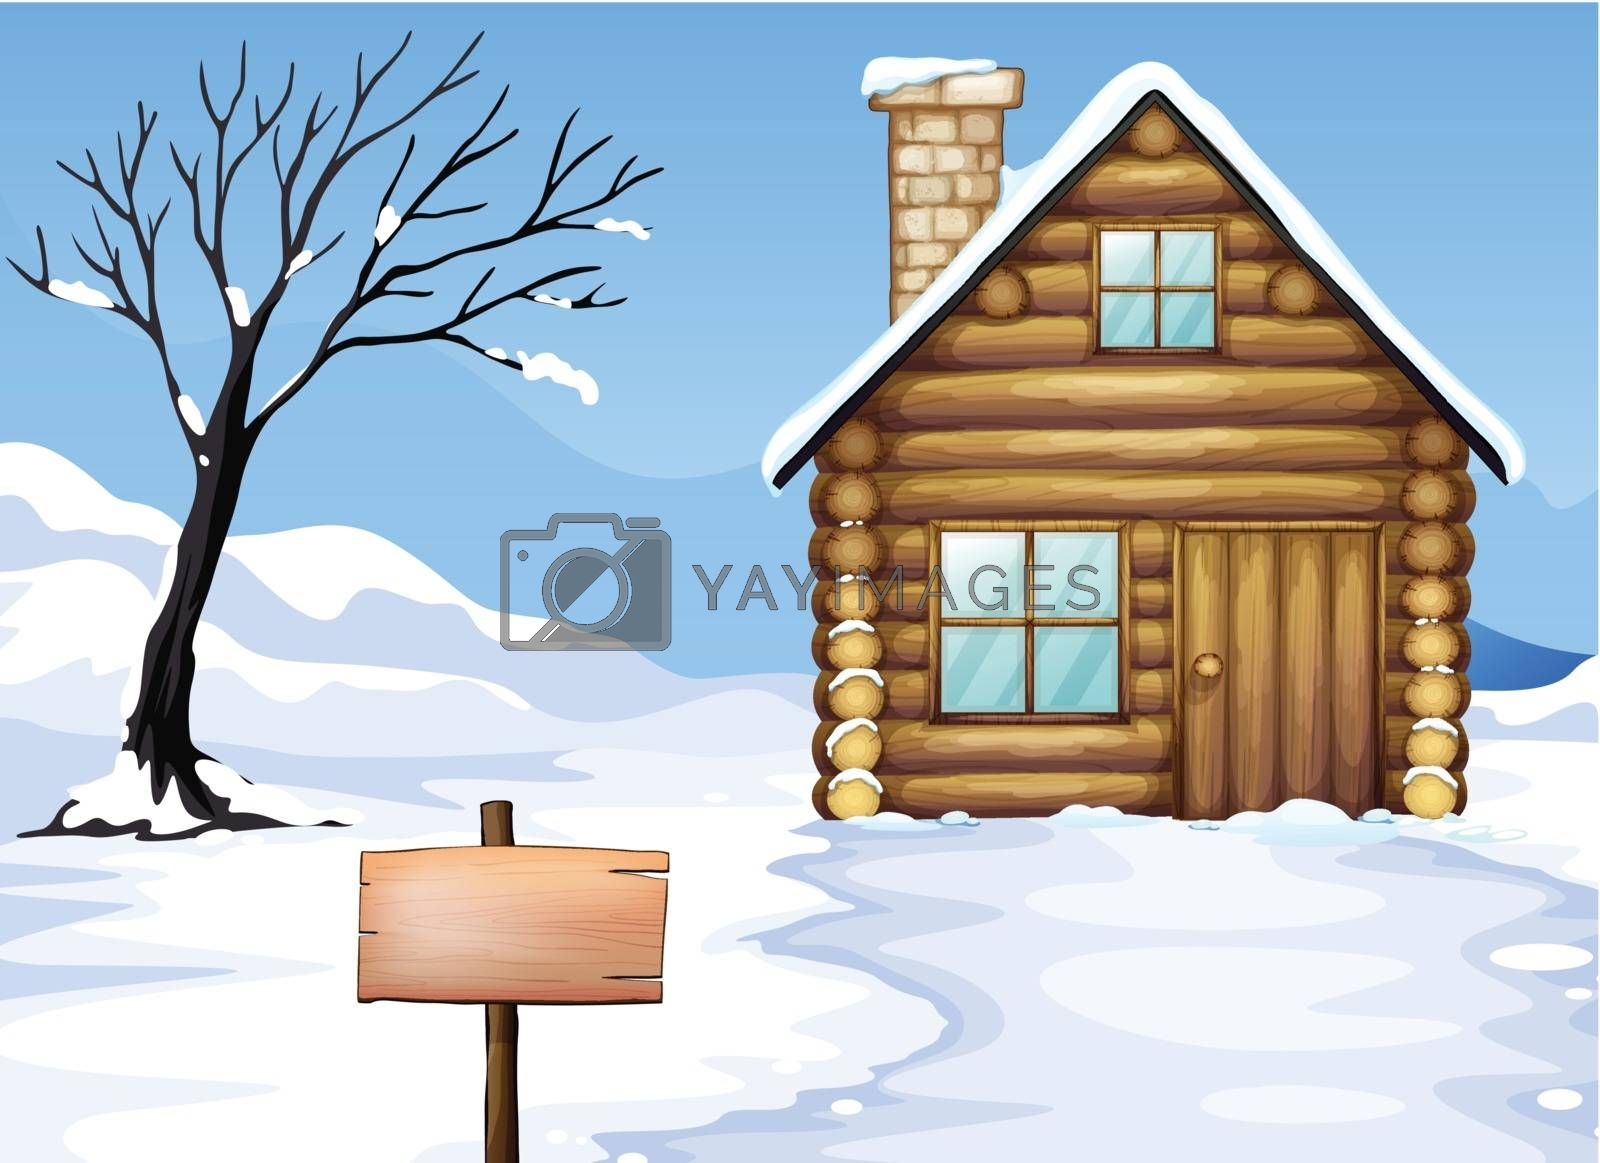 Illustration of an empty signboard, a house and a dying tree